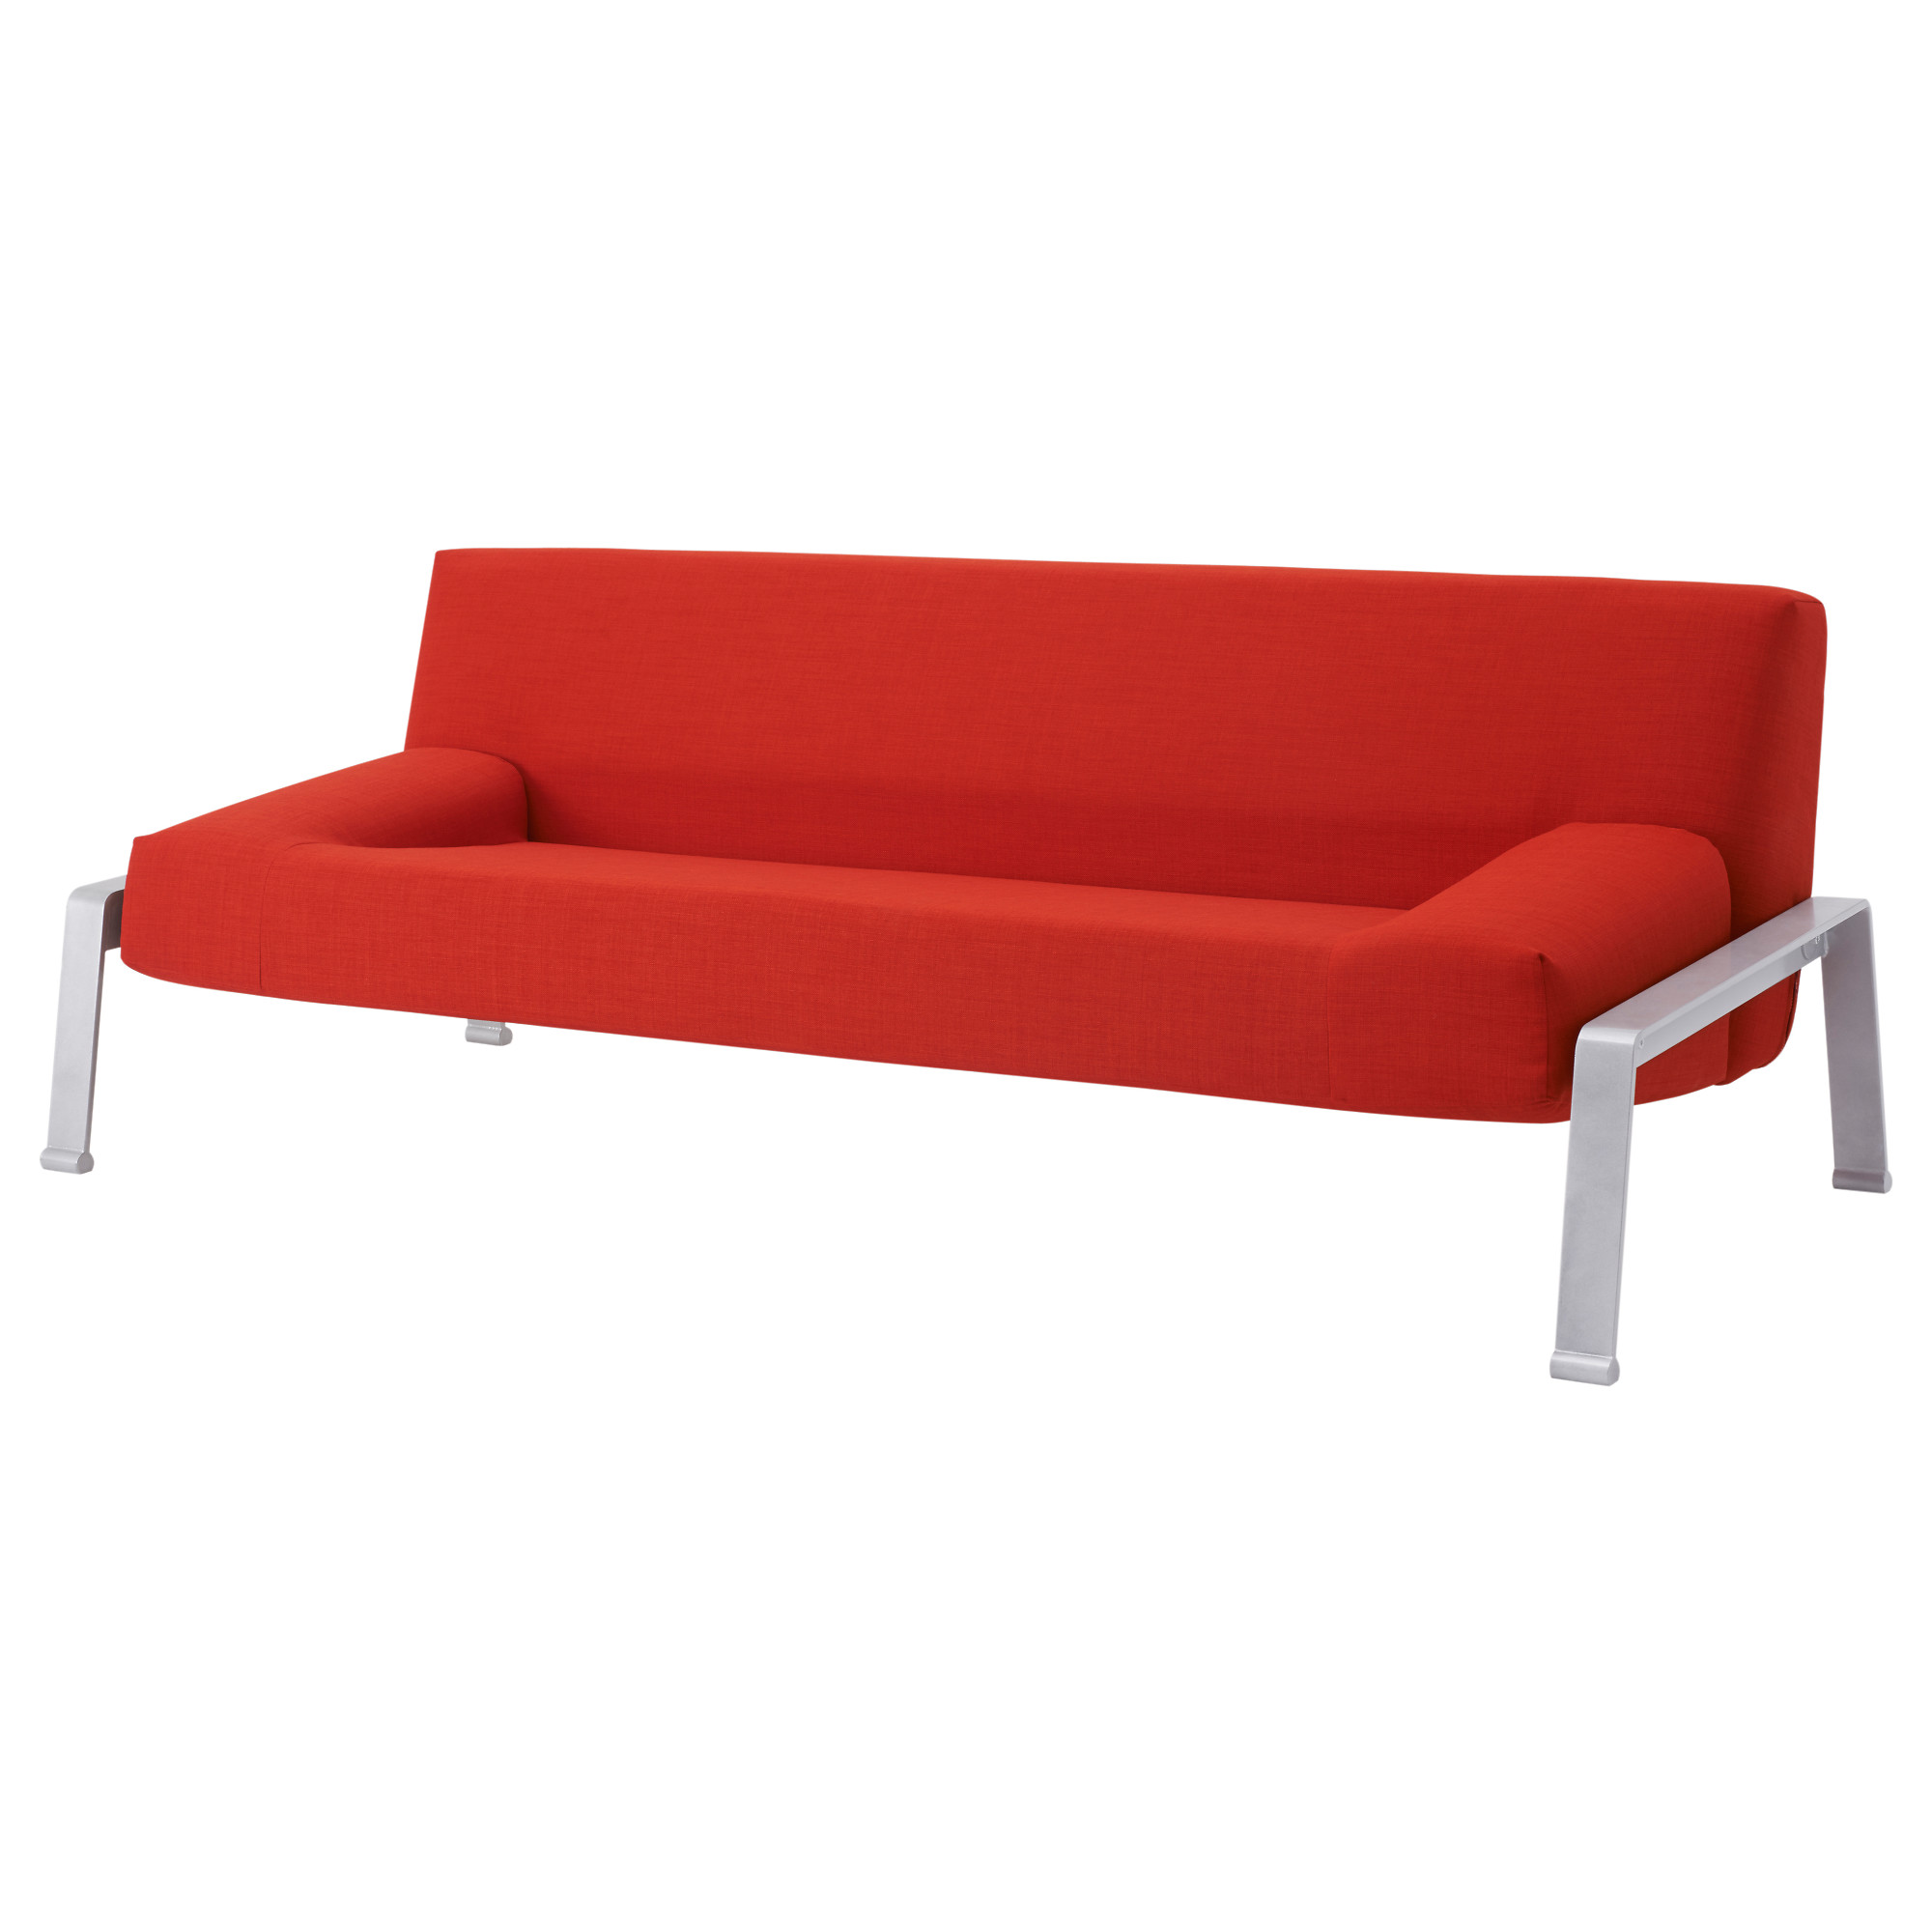 Pull Out Sofa Bed | Moheda Sofa Bed | Fold Out Bed Chair